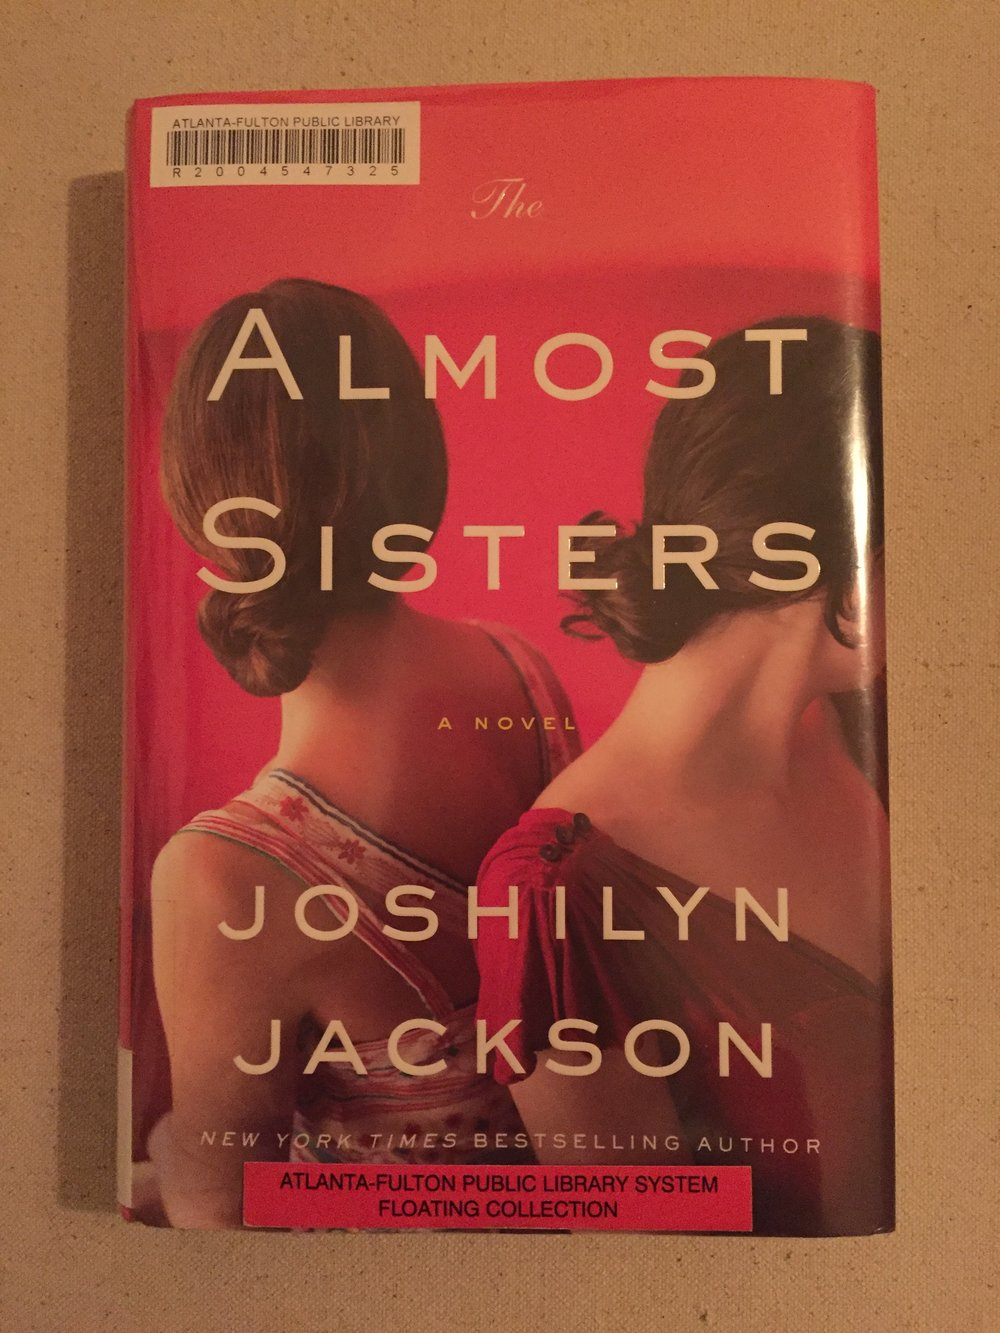 The Almost Sisters.jpeg